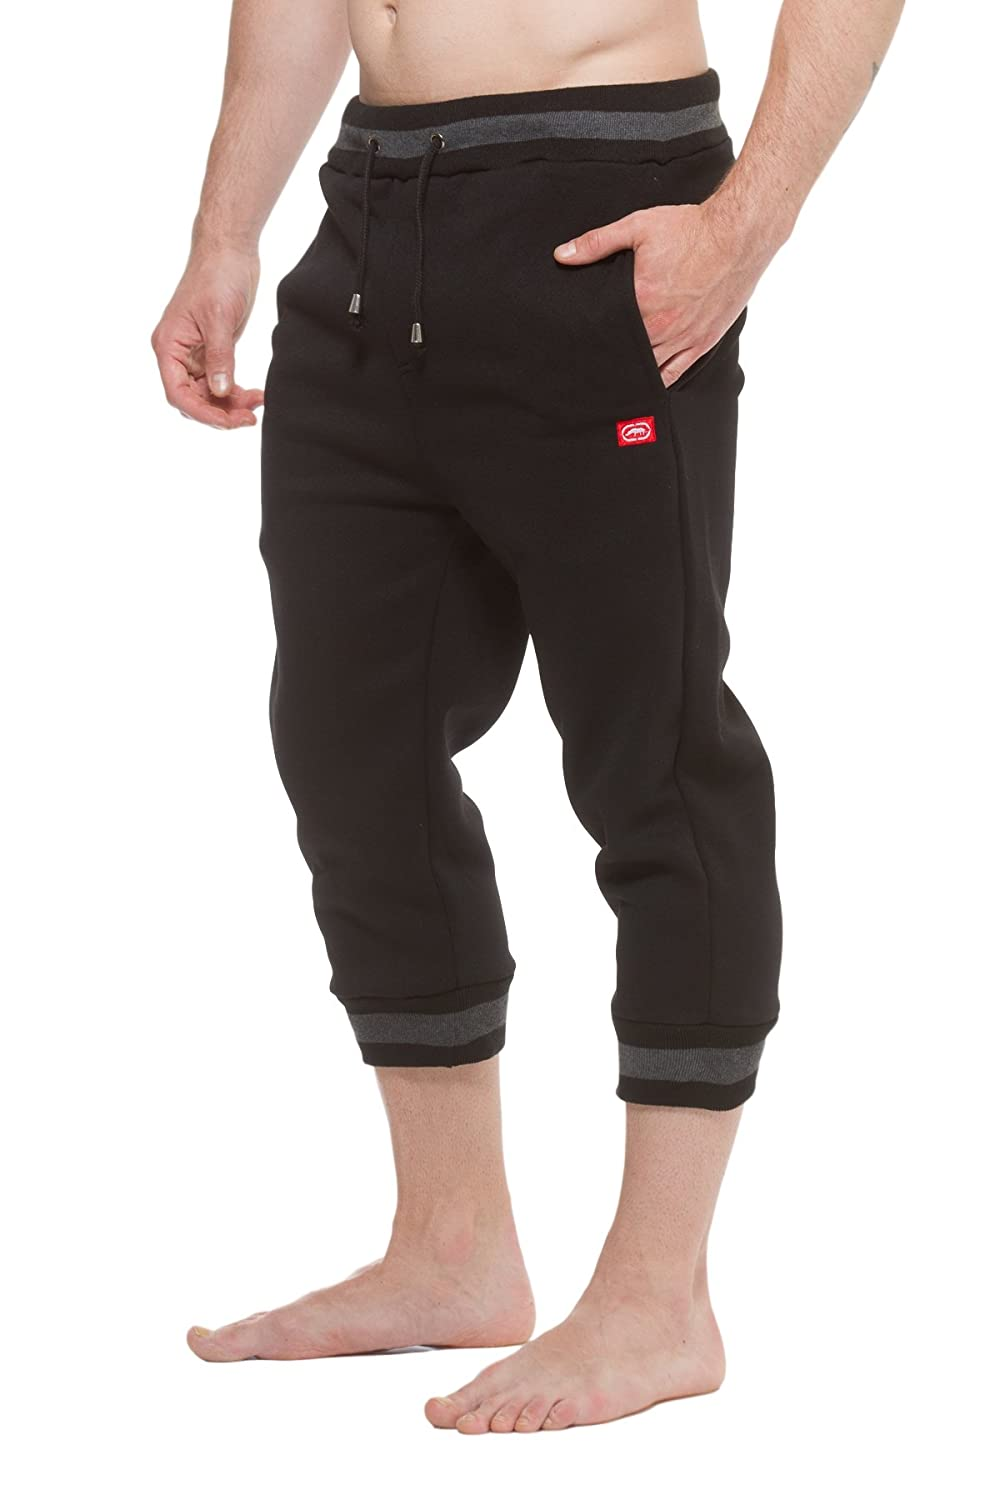 Ecko Unltd. Mens Fleece Capri Jogger Pants